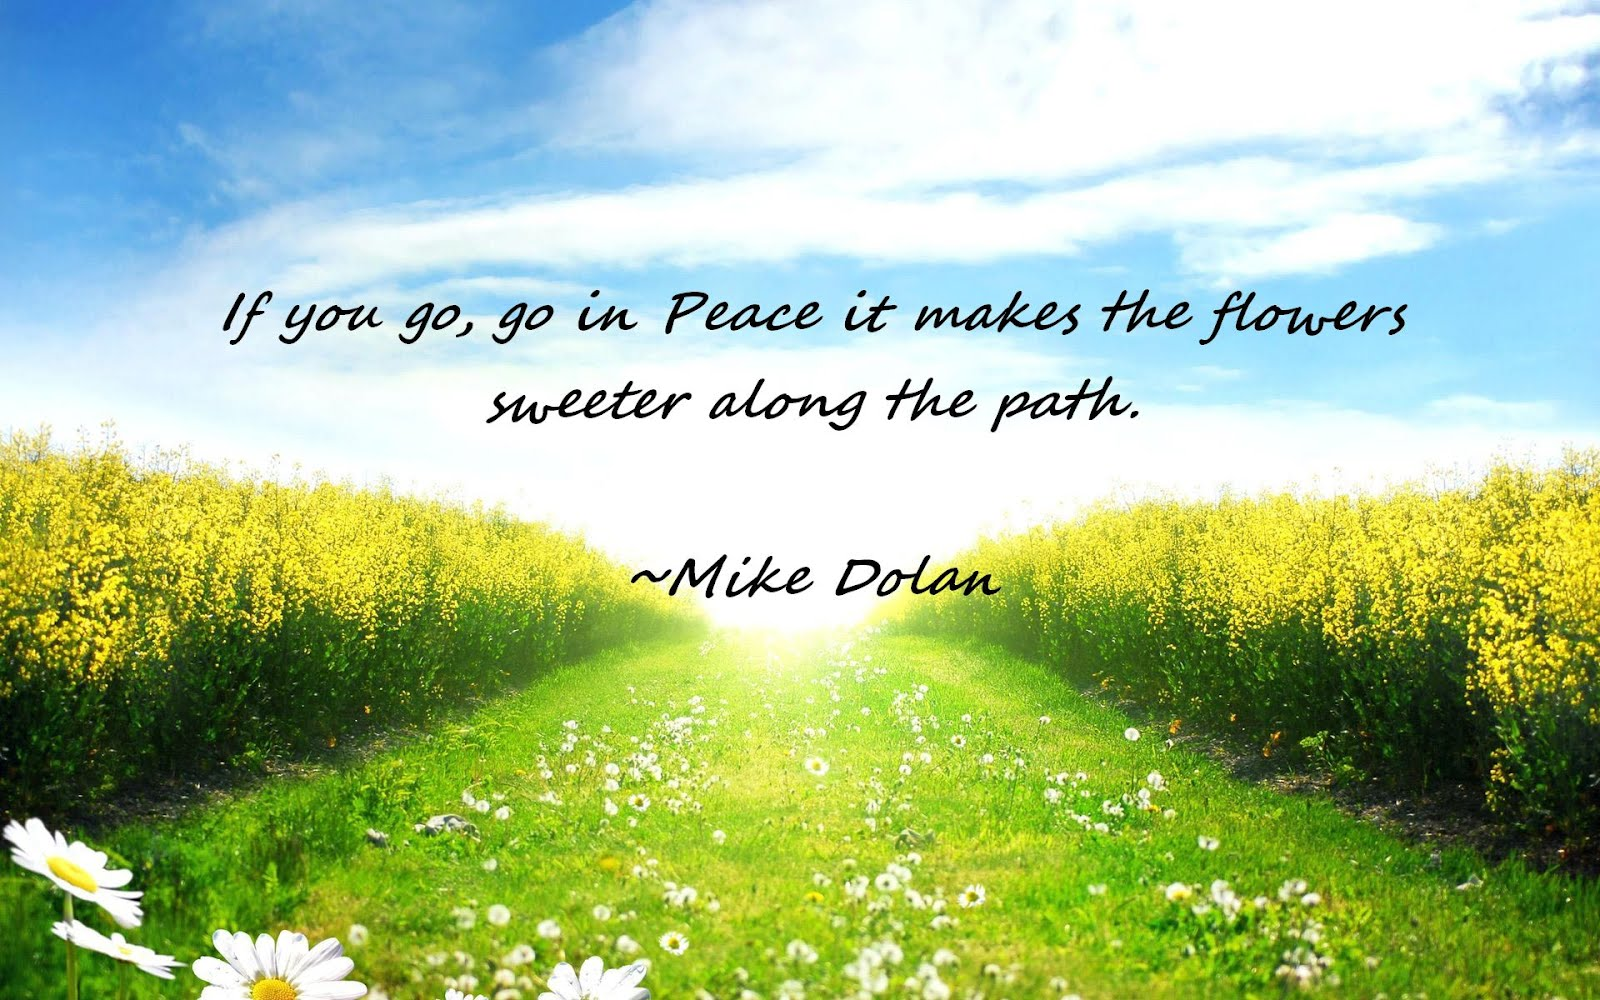 Peaceful Life Quotes 30 Mind Blowing Peace Quotes